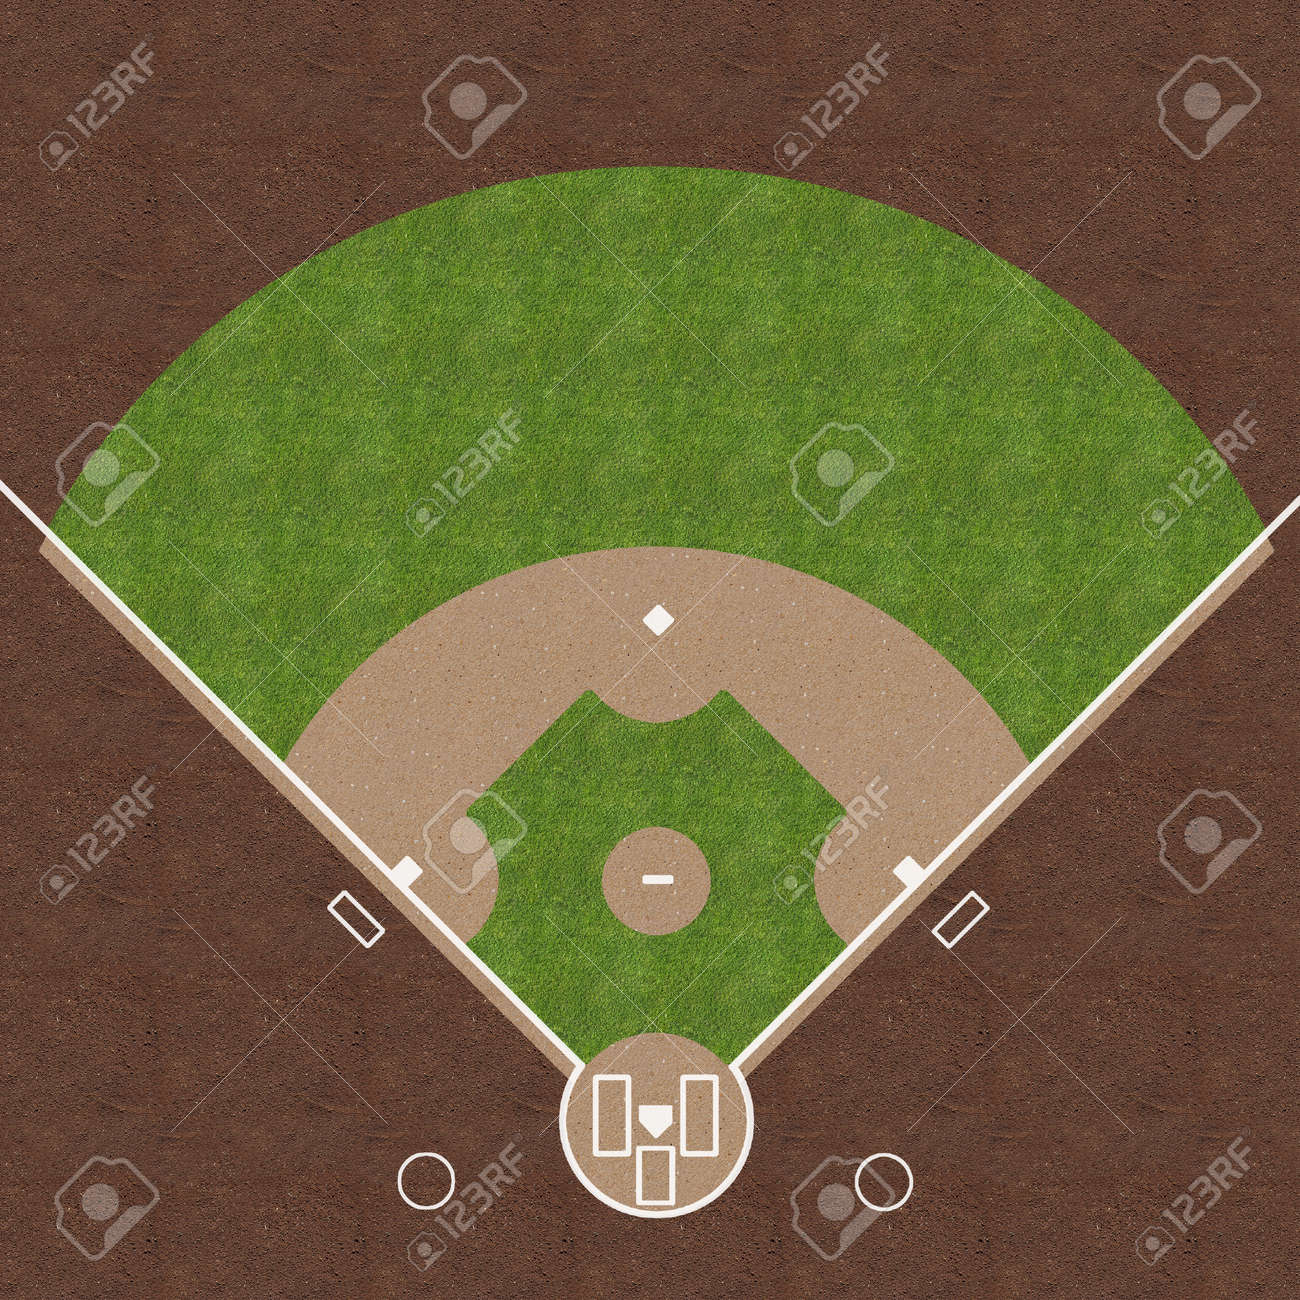 An overhead view of an american baseball field with white markings painted on grass and gravel. Stock Photo - 25082140